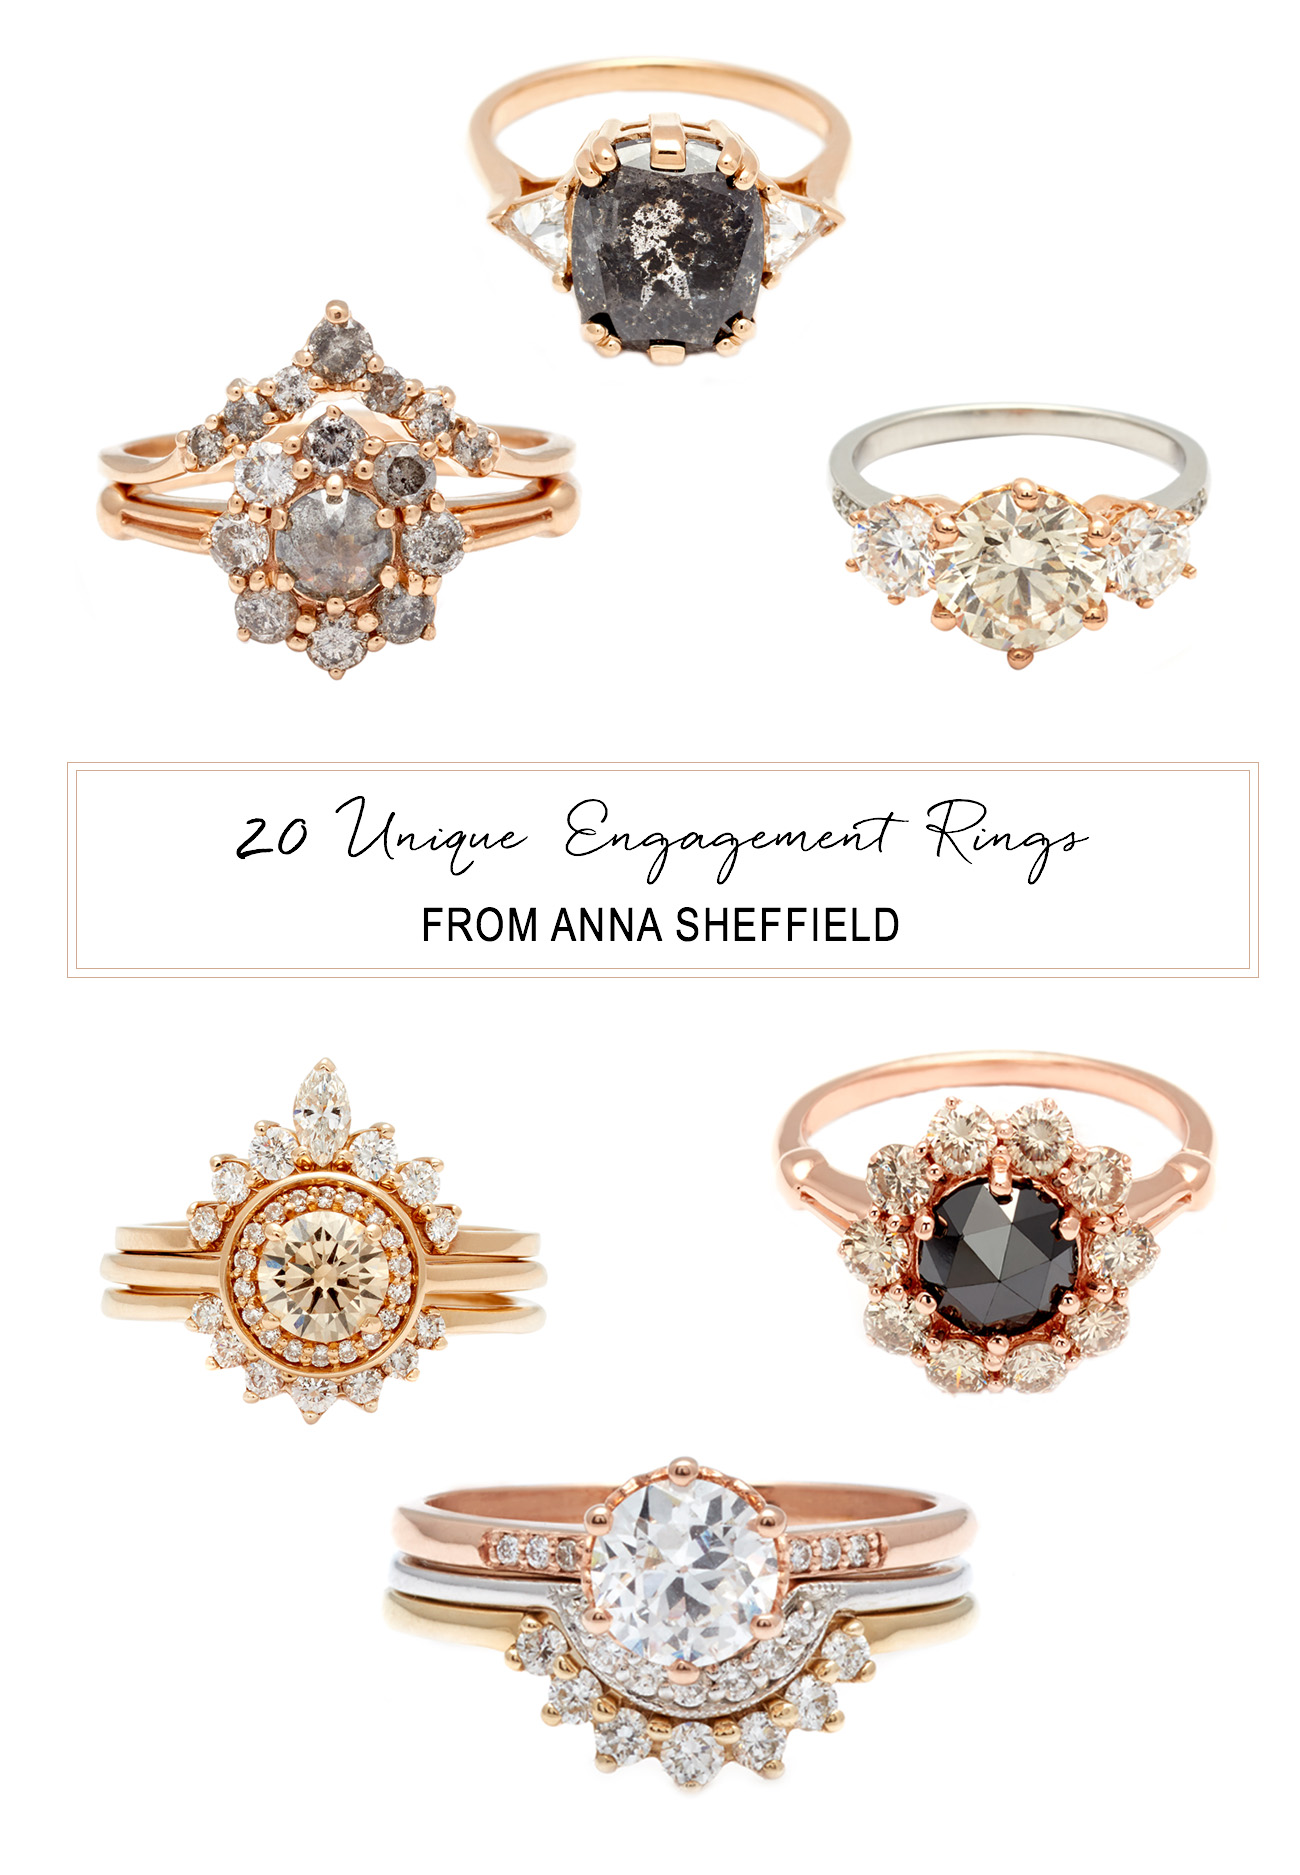 Unique Engagement rings from Anna Sheffield